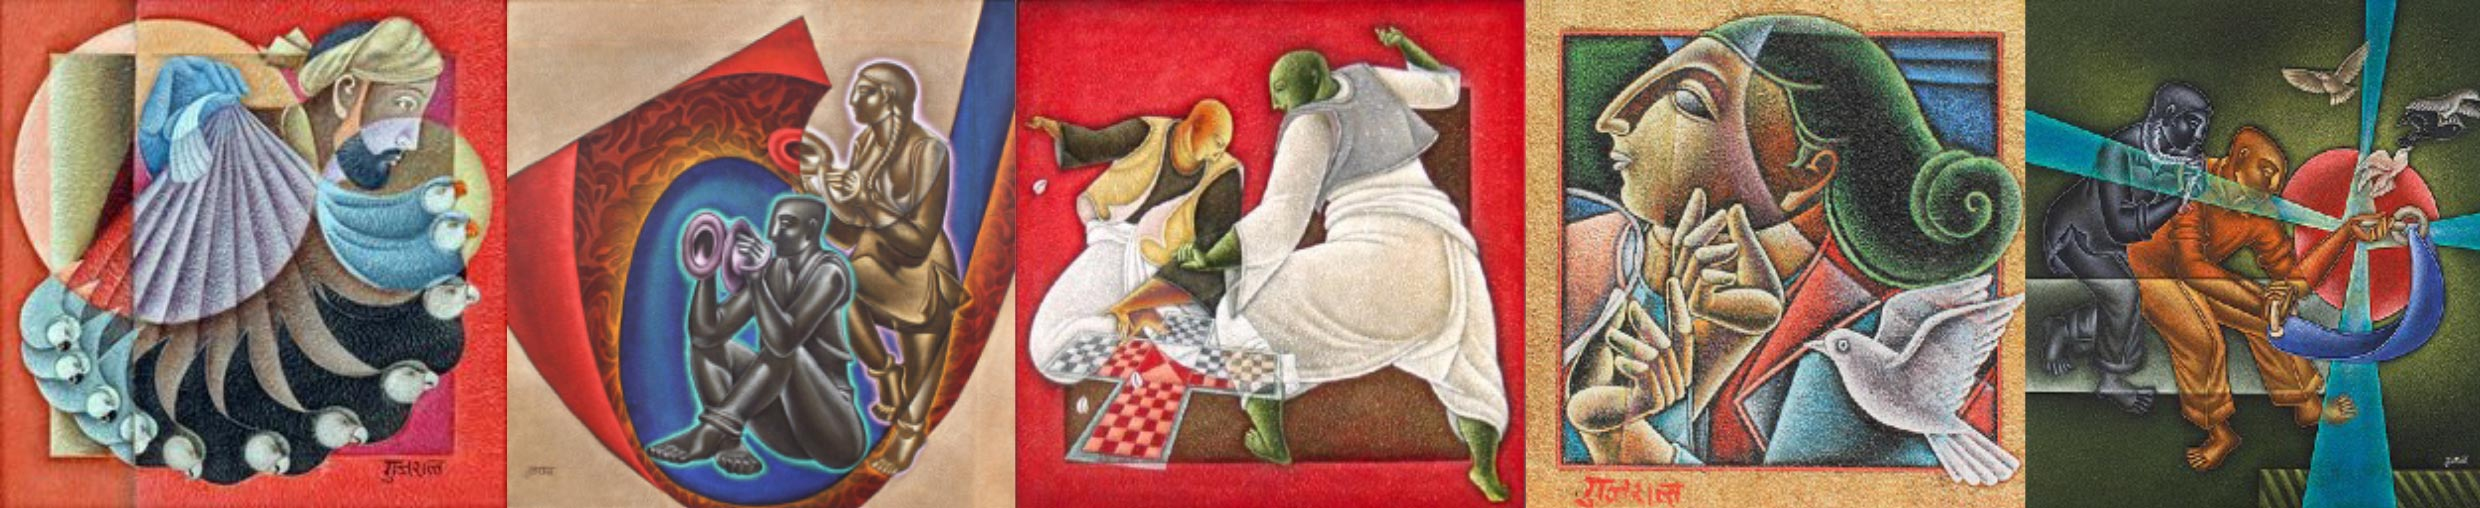 Satish Gujral - Artworks